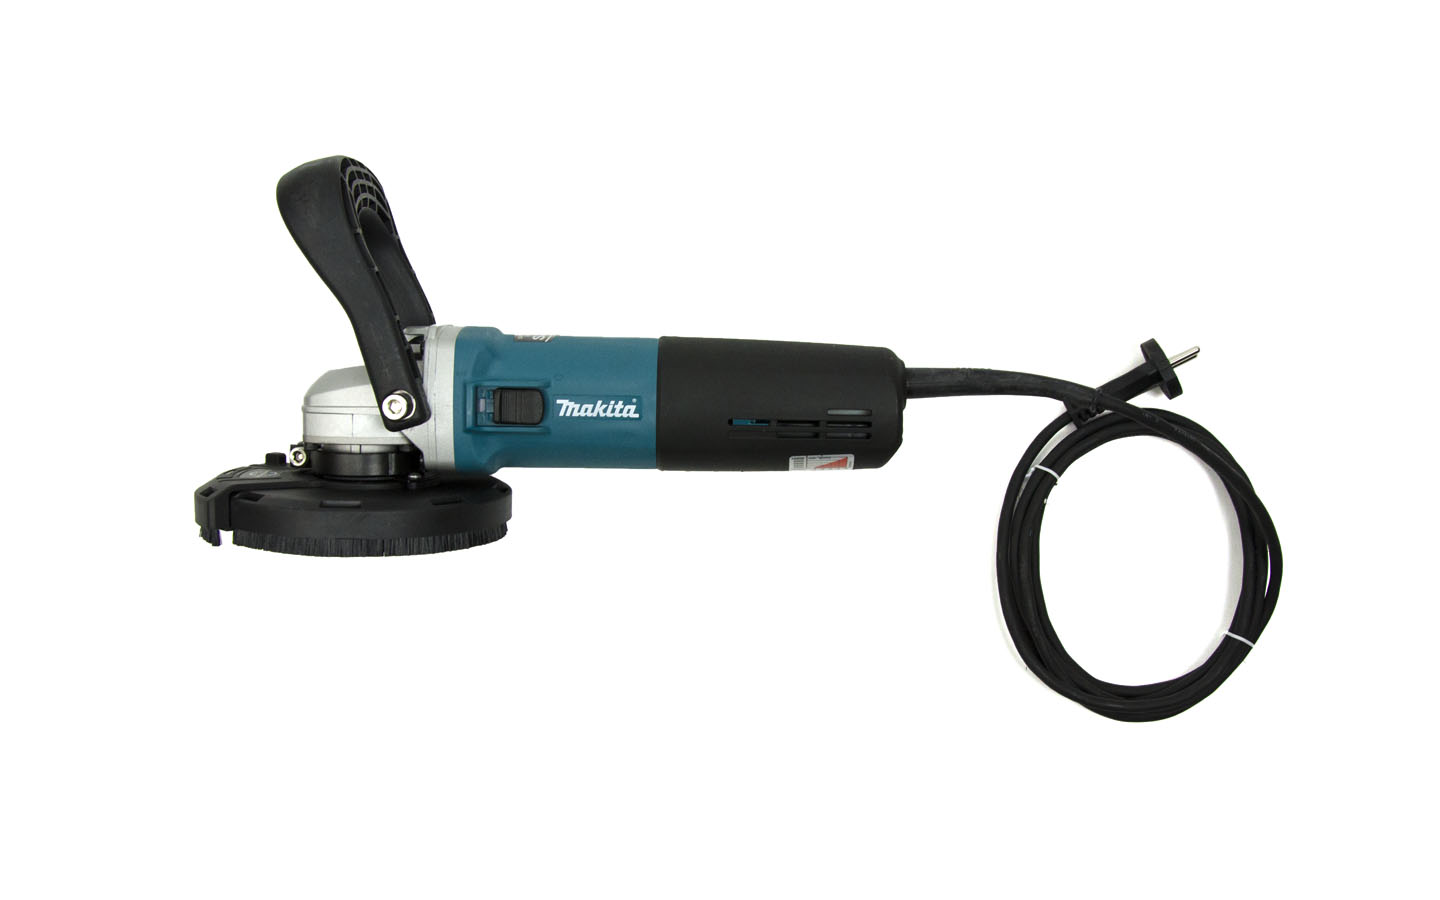 Makita concrete grinder Trongaard SF 14-125 DR